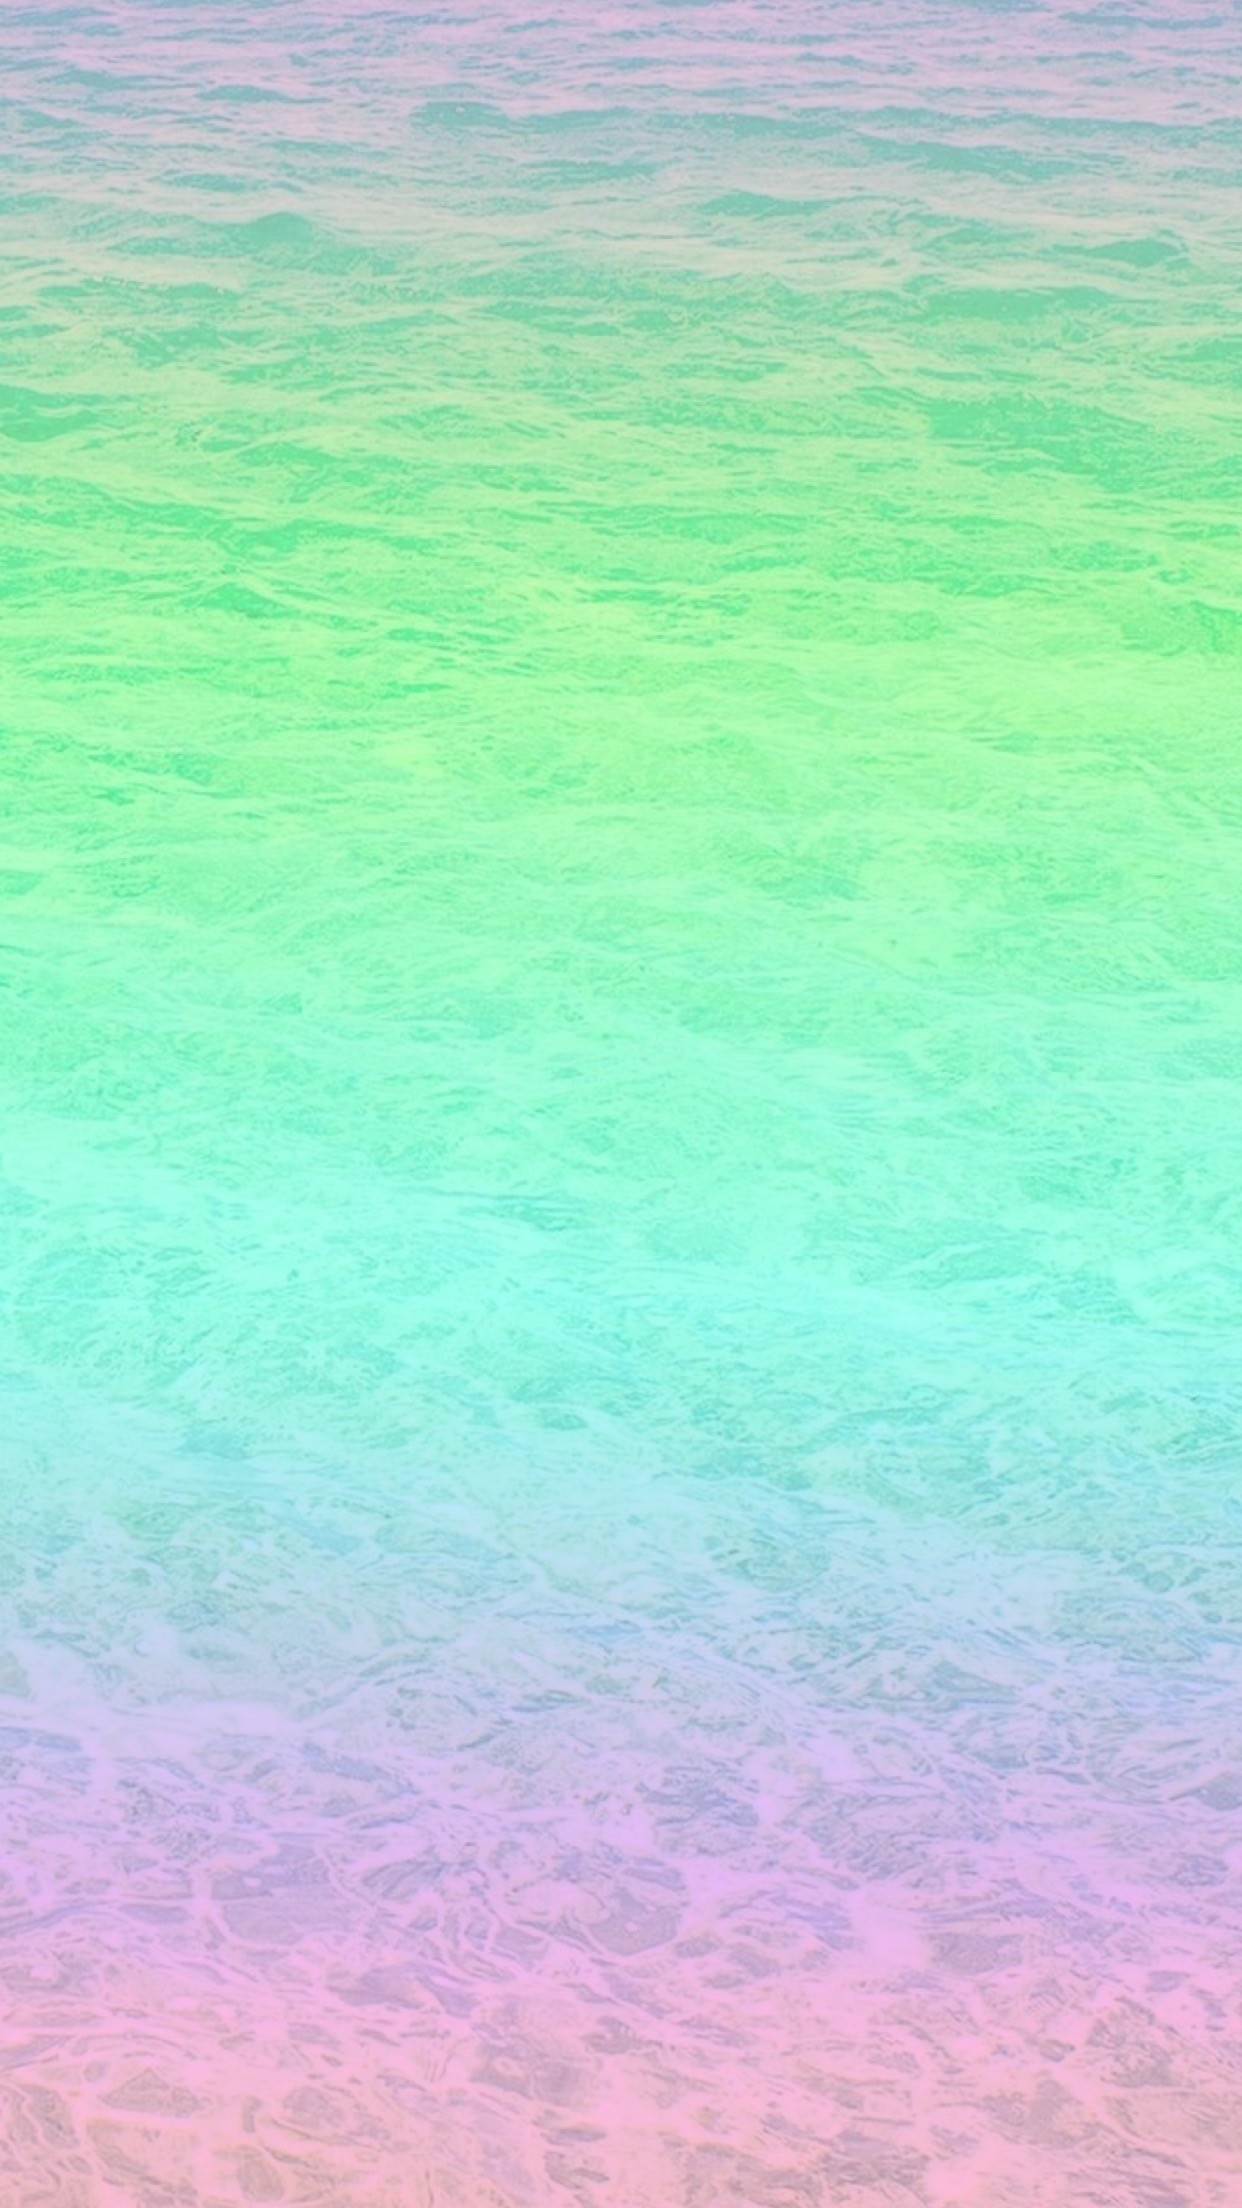 Gradient Series – I did NOT make the original image underneath the  gradient, just the